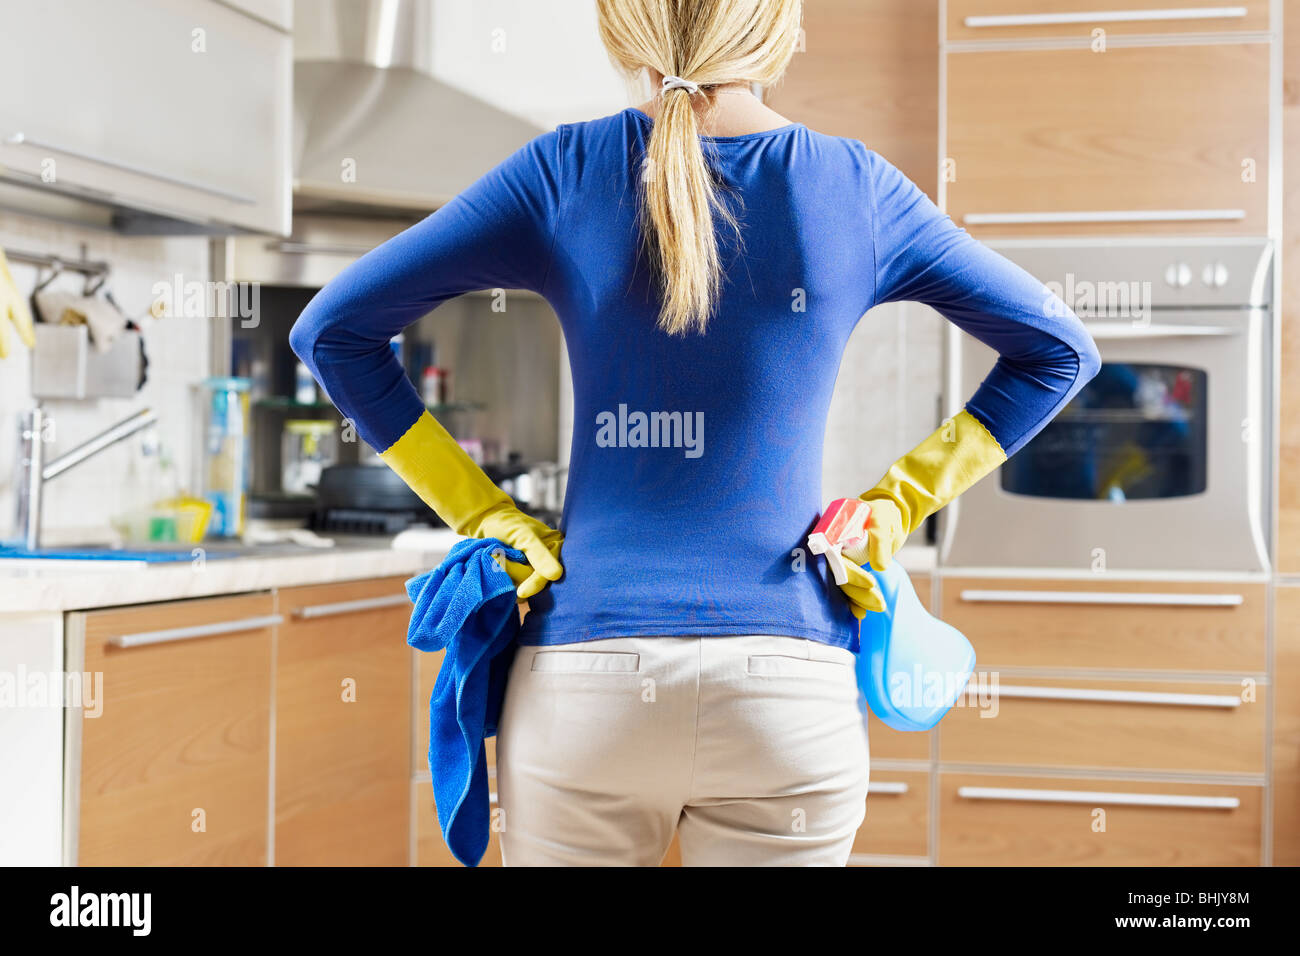 rear view of woman with yellow gloves in kitchen doing housework - Stock Image